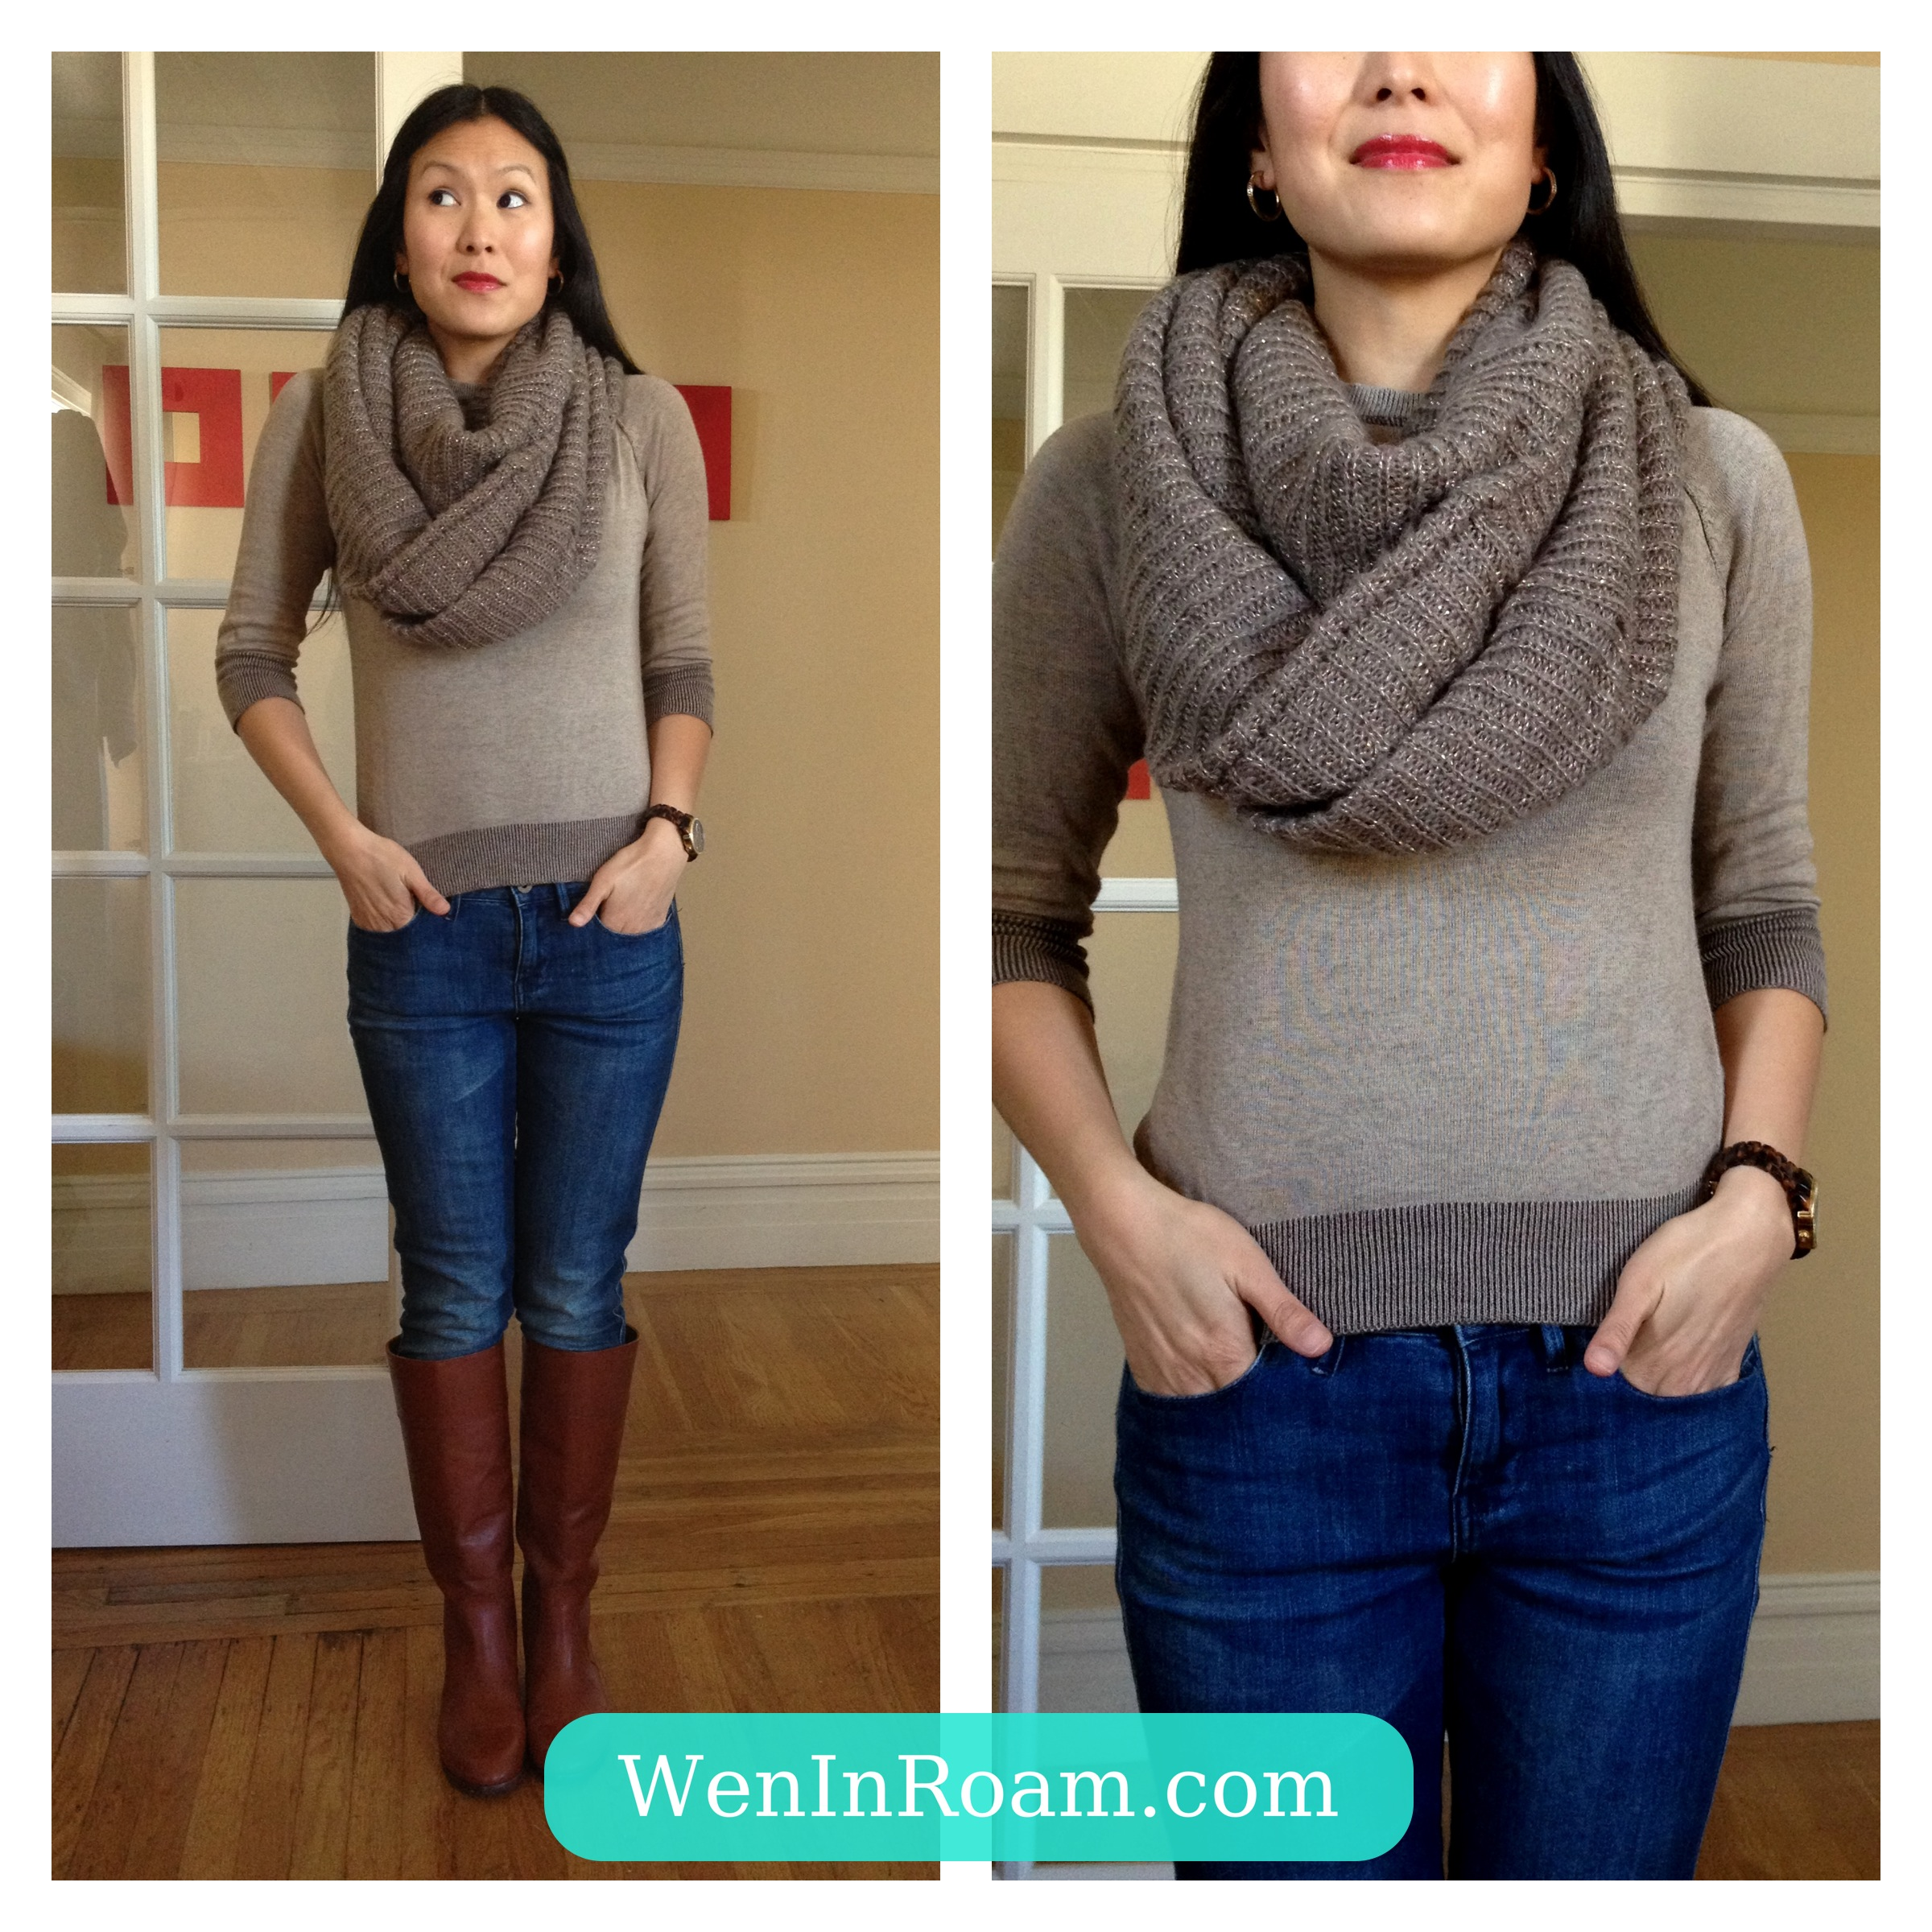 To acquire How to thick wear winter scarf pictures trends